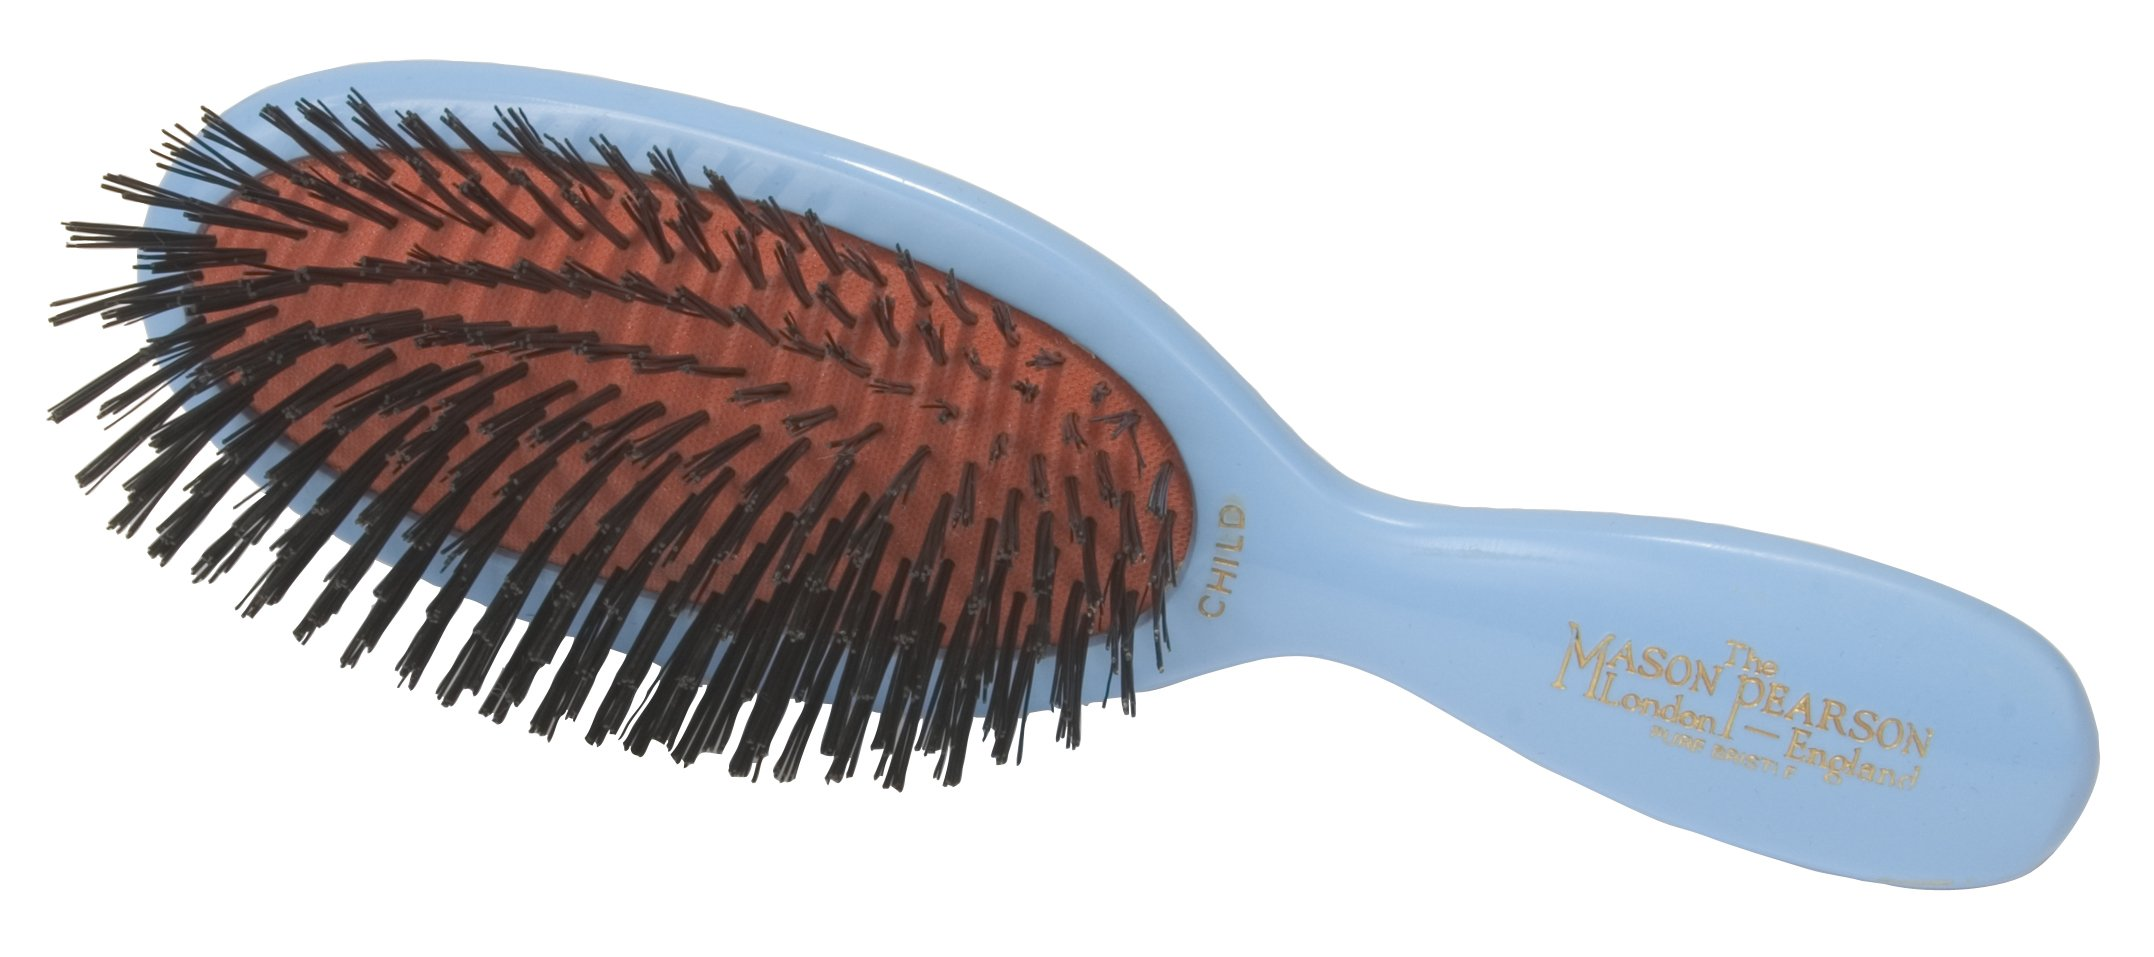 Mason Pearson Child's Hair Brush - 71qg6bodBaL - Mason Pearson Child's Hair Brush, Blue